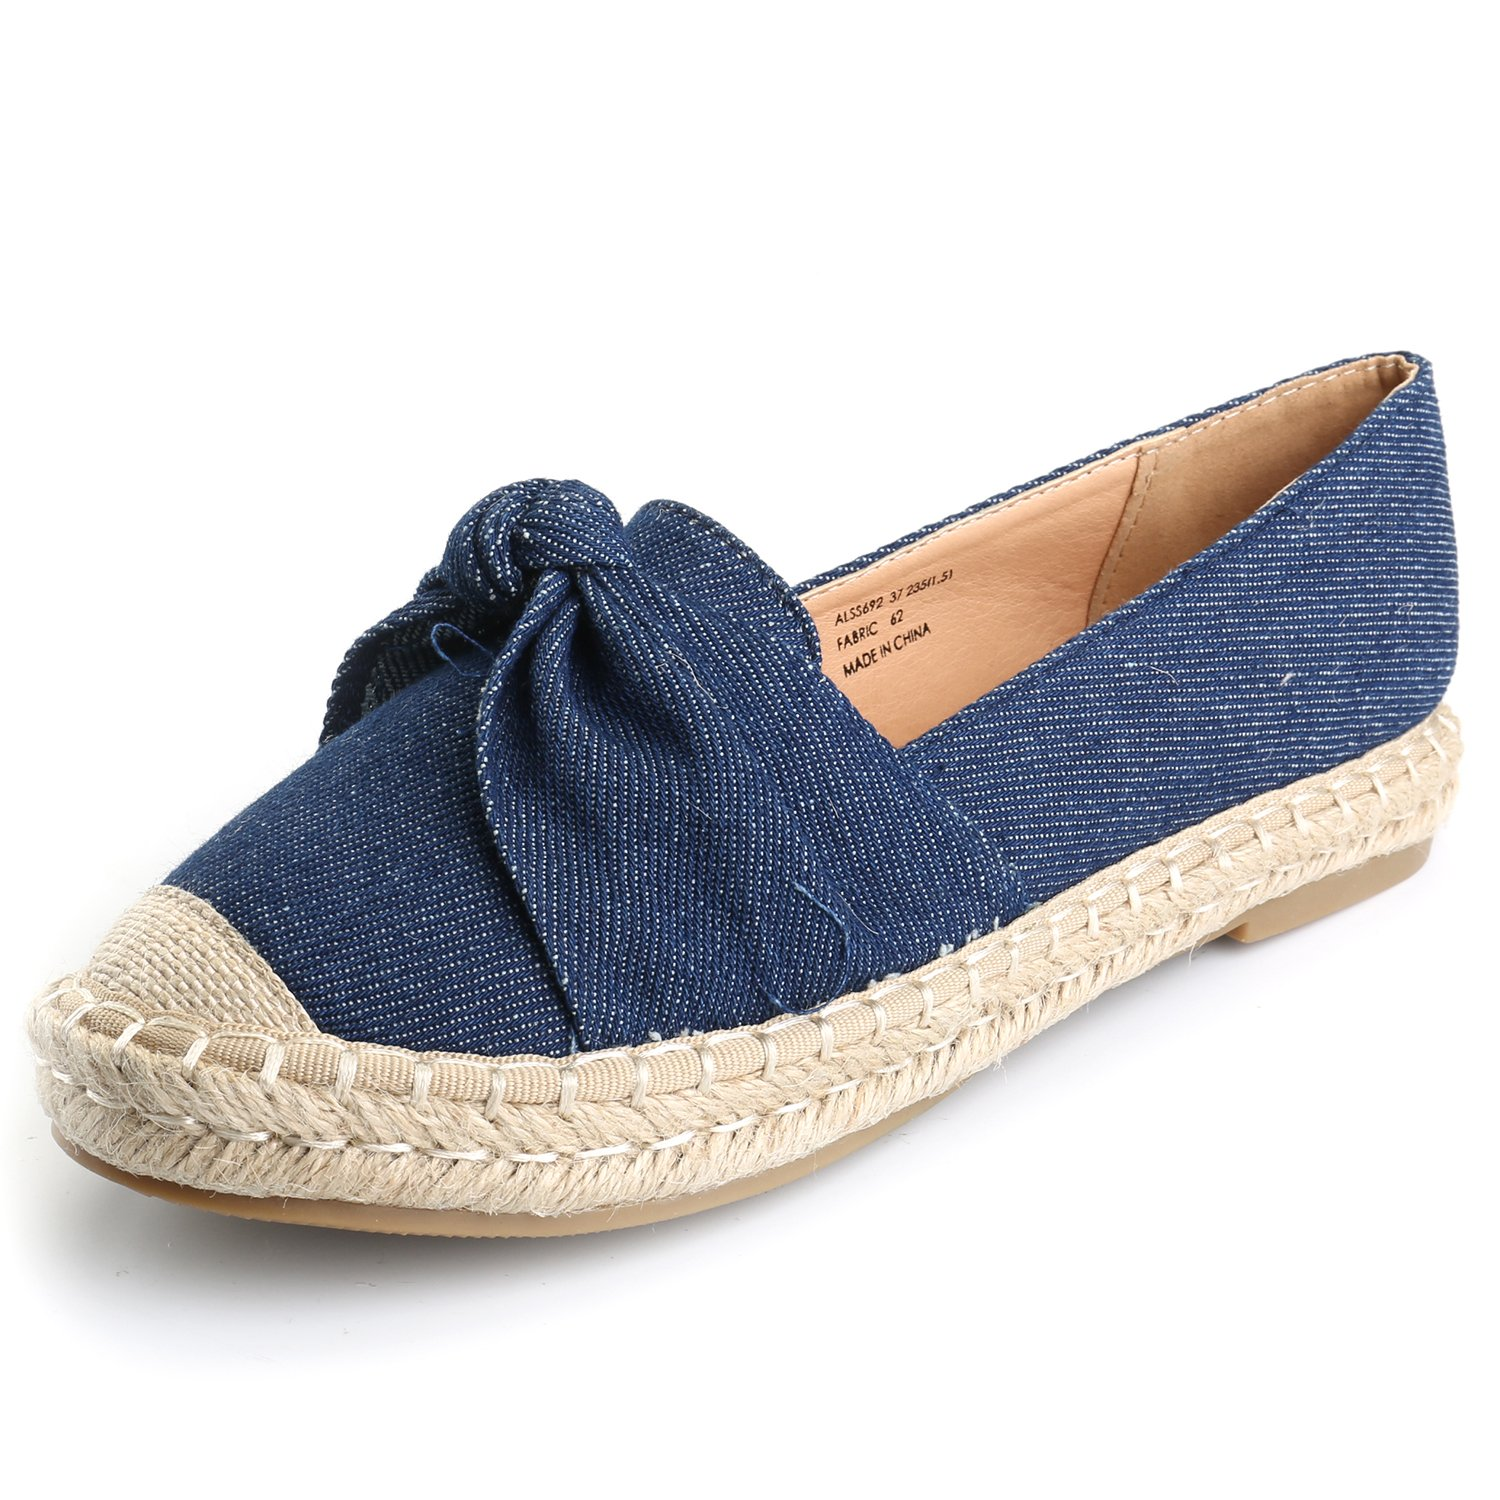 Alexis Leroy Women's Closed Toe Slip-On Bow Espadrille Loafer Flats Dark Blue40 M EU/9-9.5 B(M) US by Alexis Leroy (Image #1)